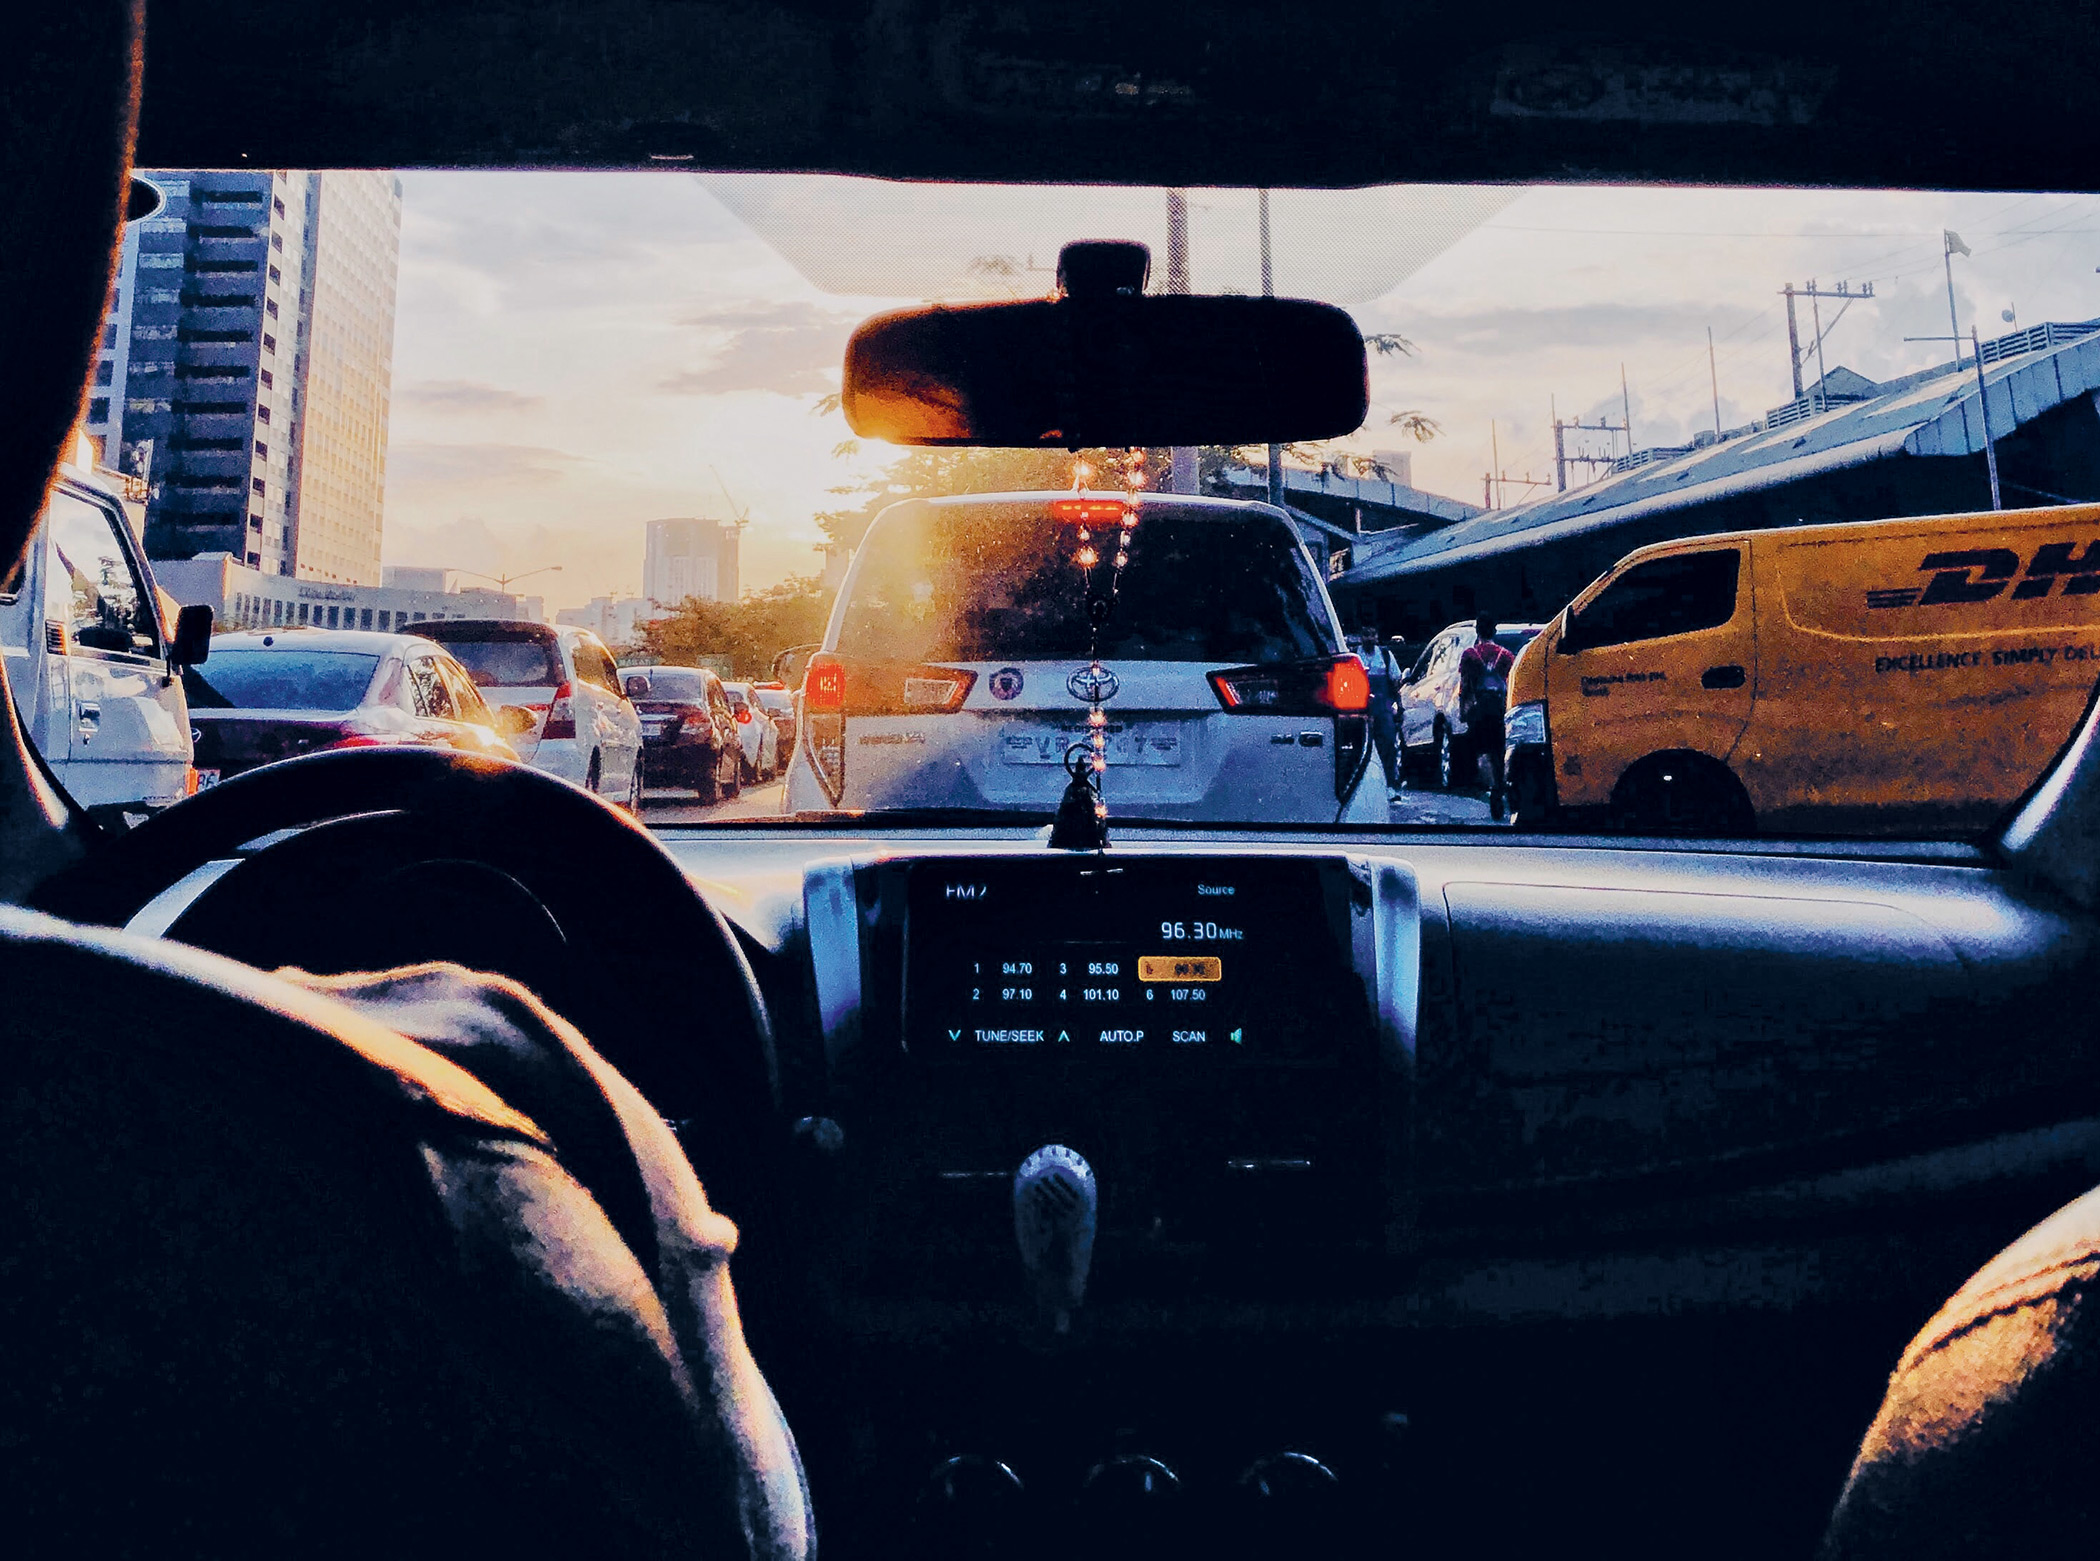 In a jam: sitting in traffic in Metro Manila, the Philippines.